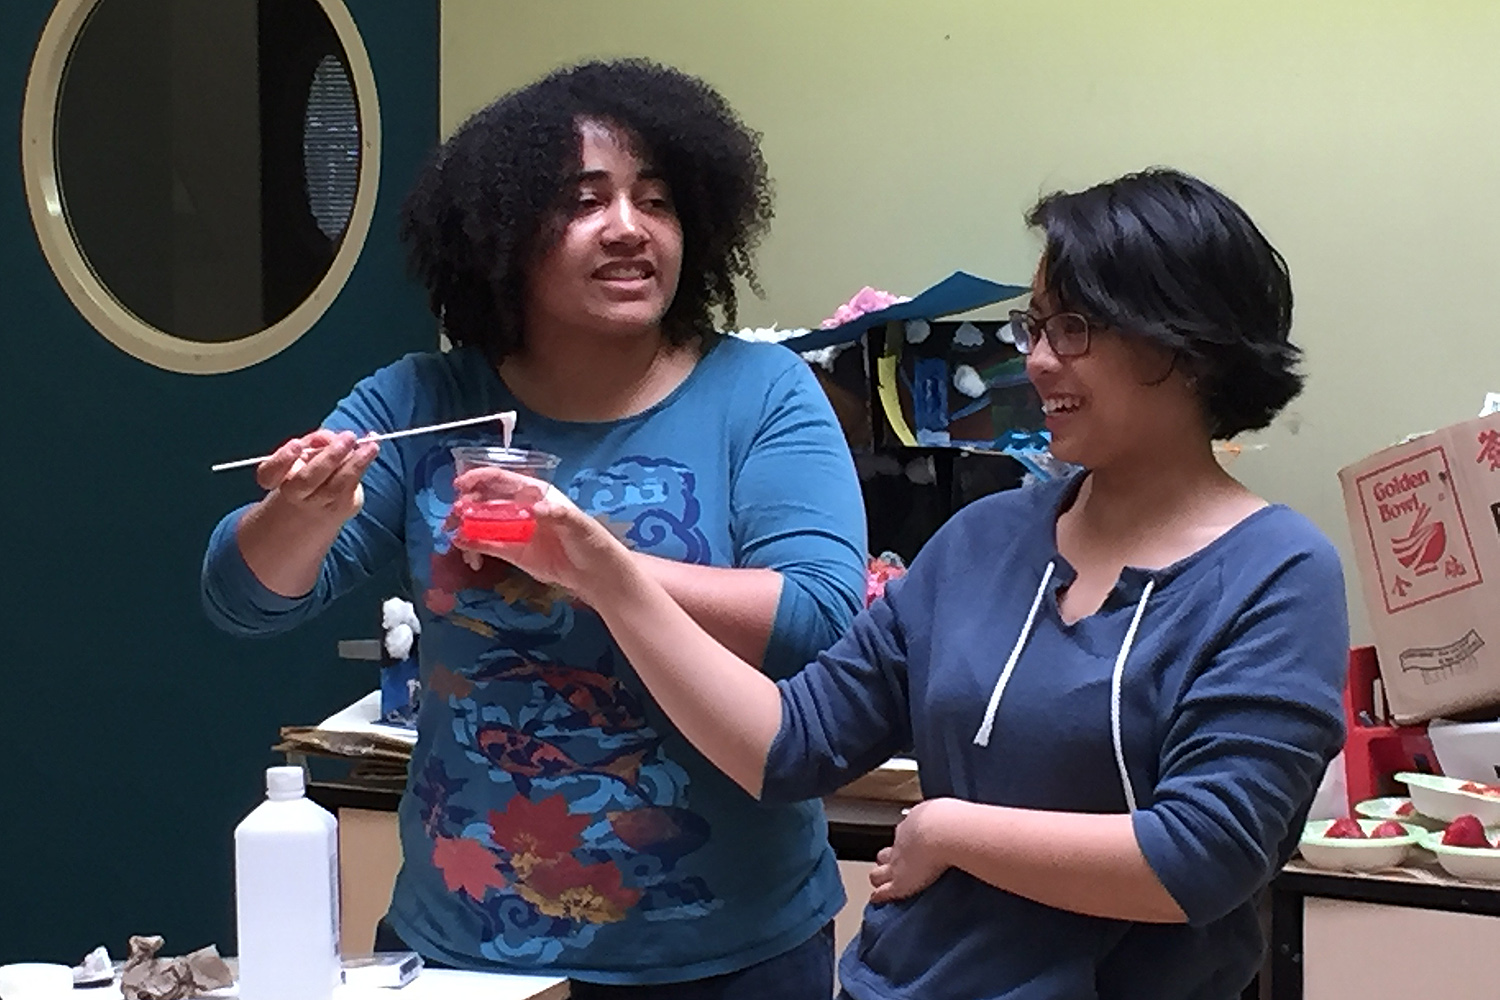 At Green Street, biology major Taylor Matthew '17 and East Asian studies major Erin Deleon '17 and led a hands-on science activity for GSTLC's Discovery AfterSchool students.